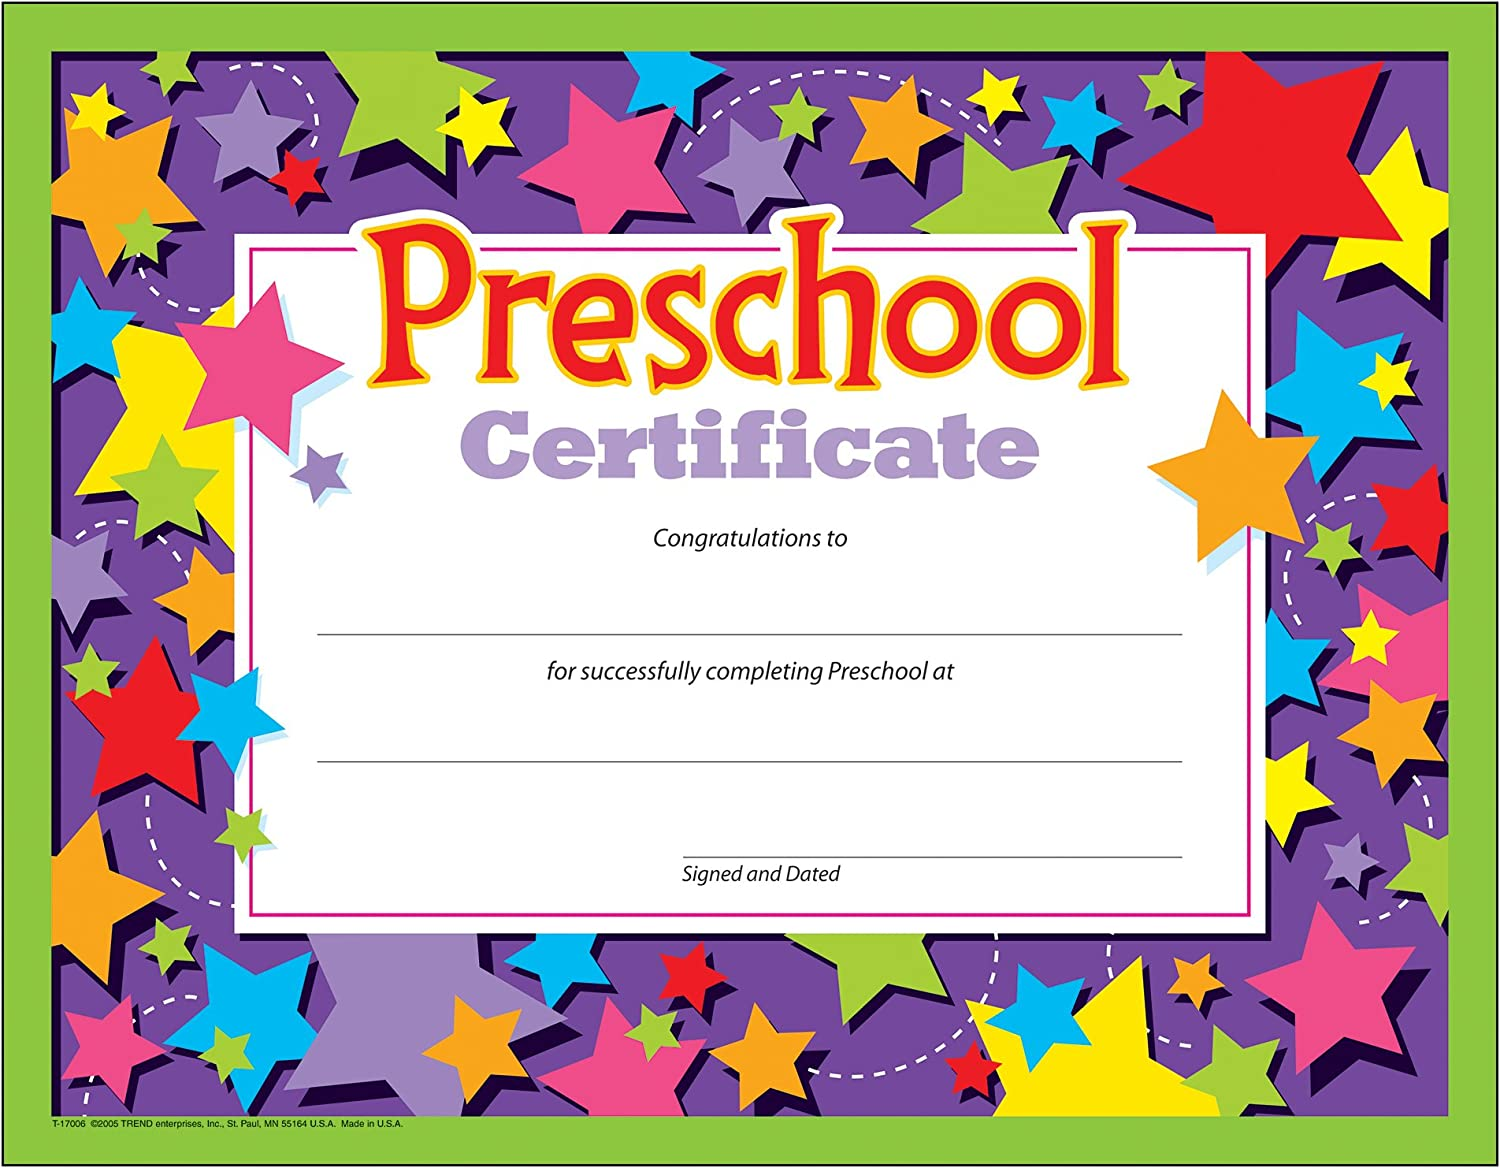 Amazon Com Preschool Certificates Pack Of 30 Blank Certificates Office Products